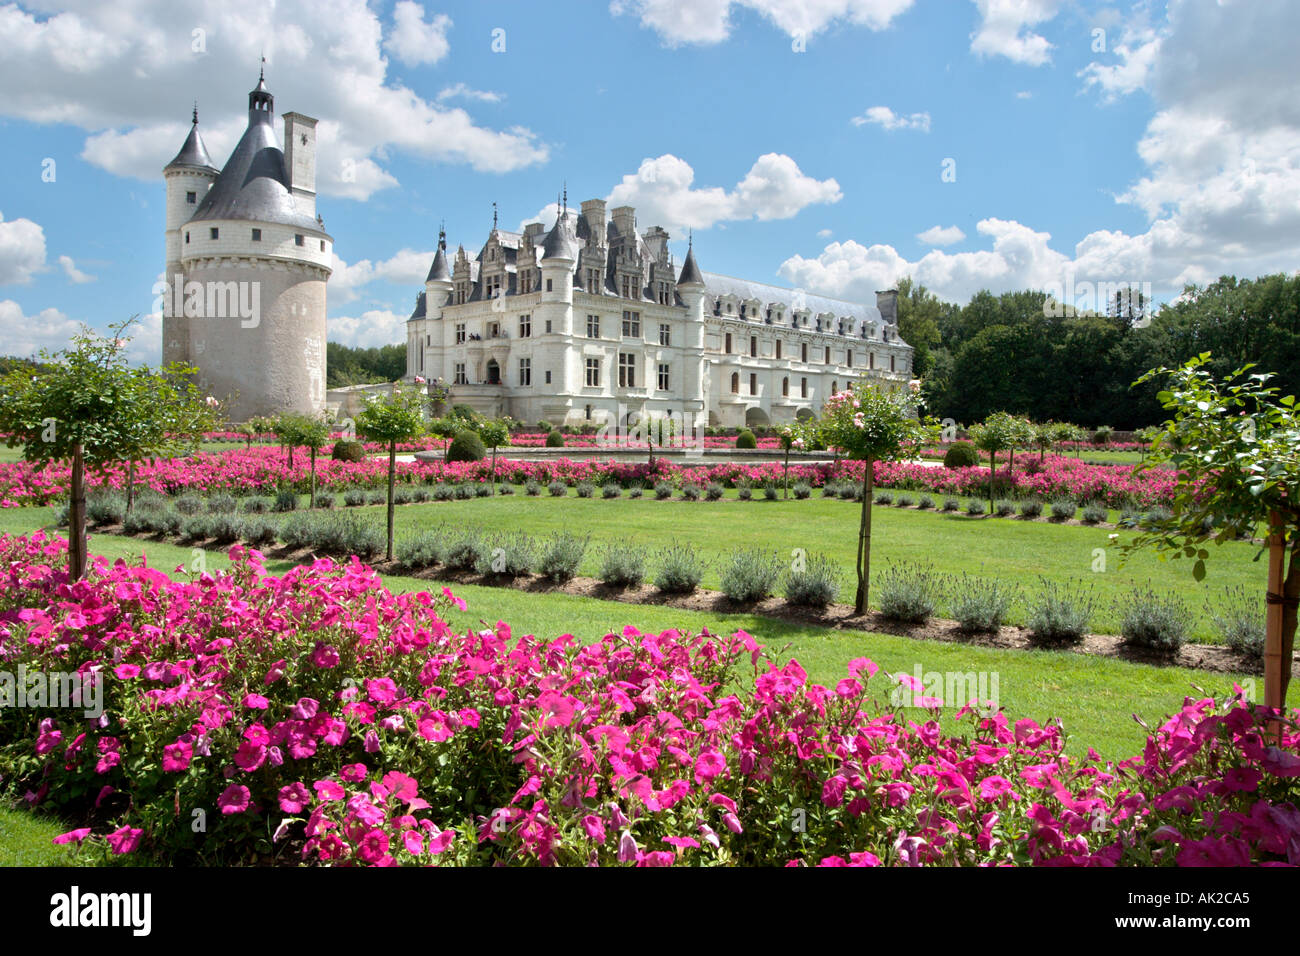 Chateau de Chenonceau and its gardens, The Loire Valley, France - Stock Image